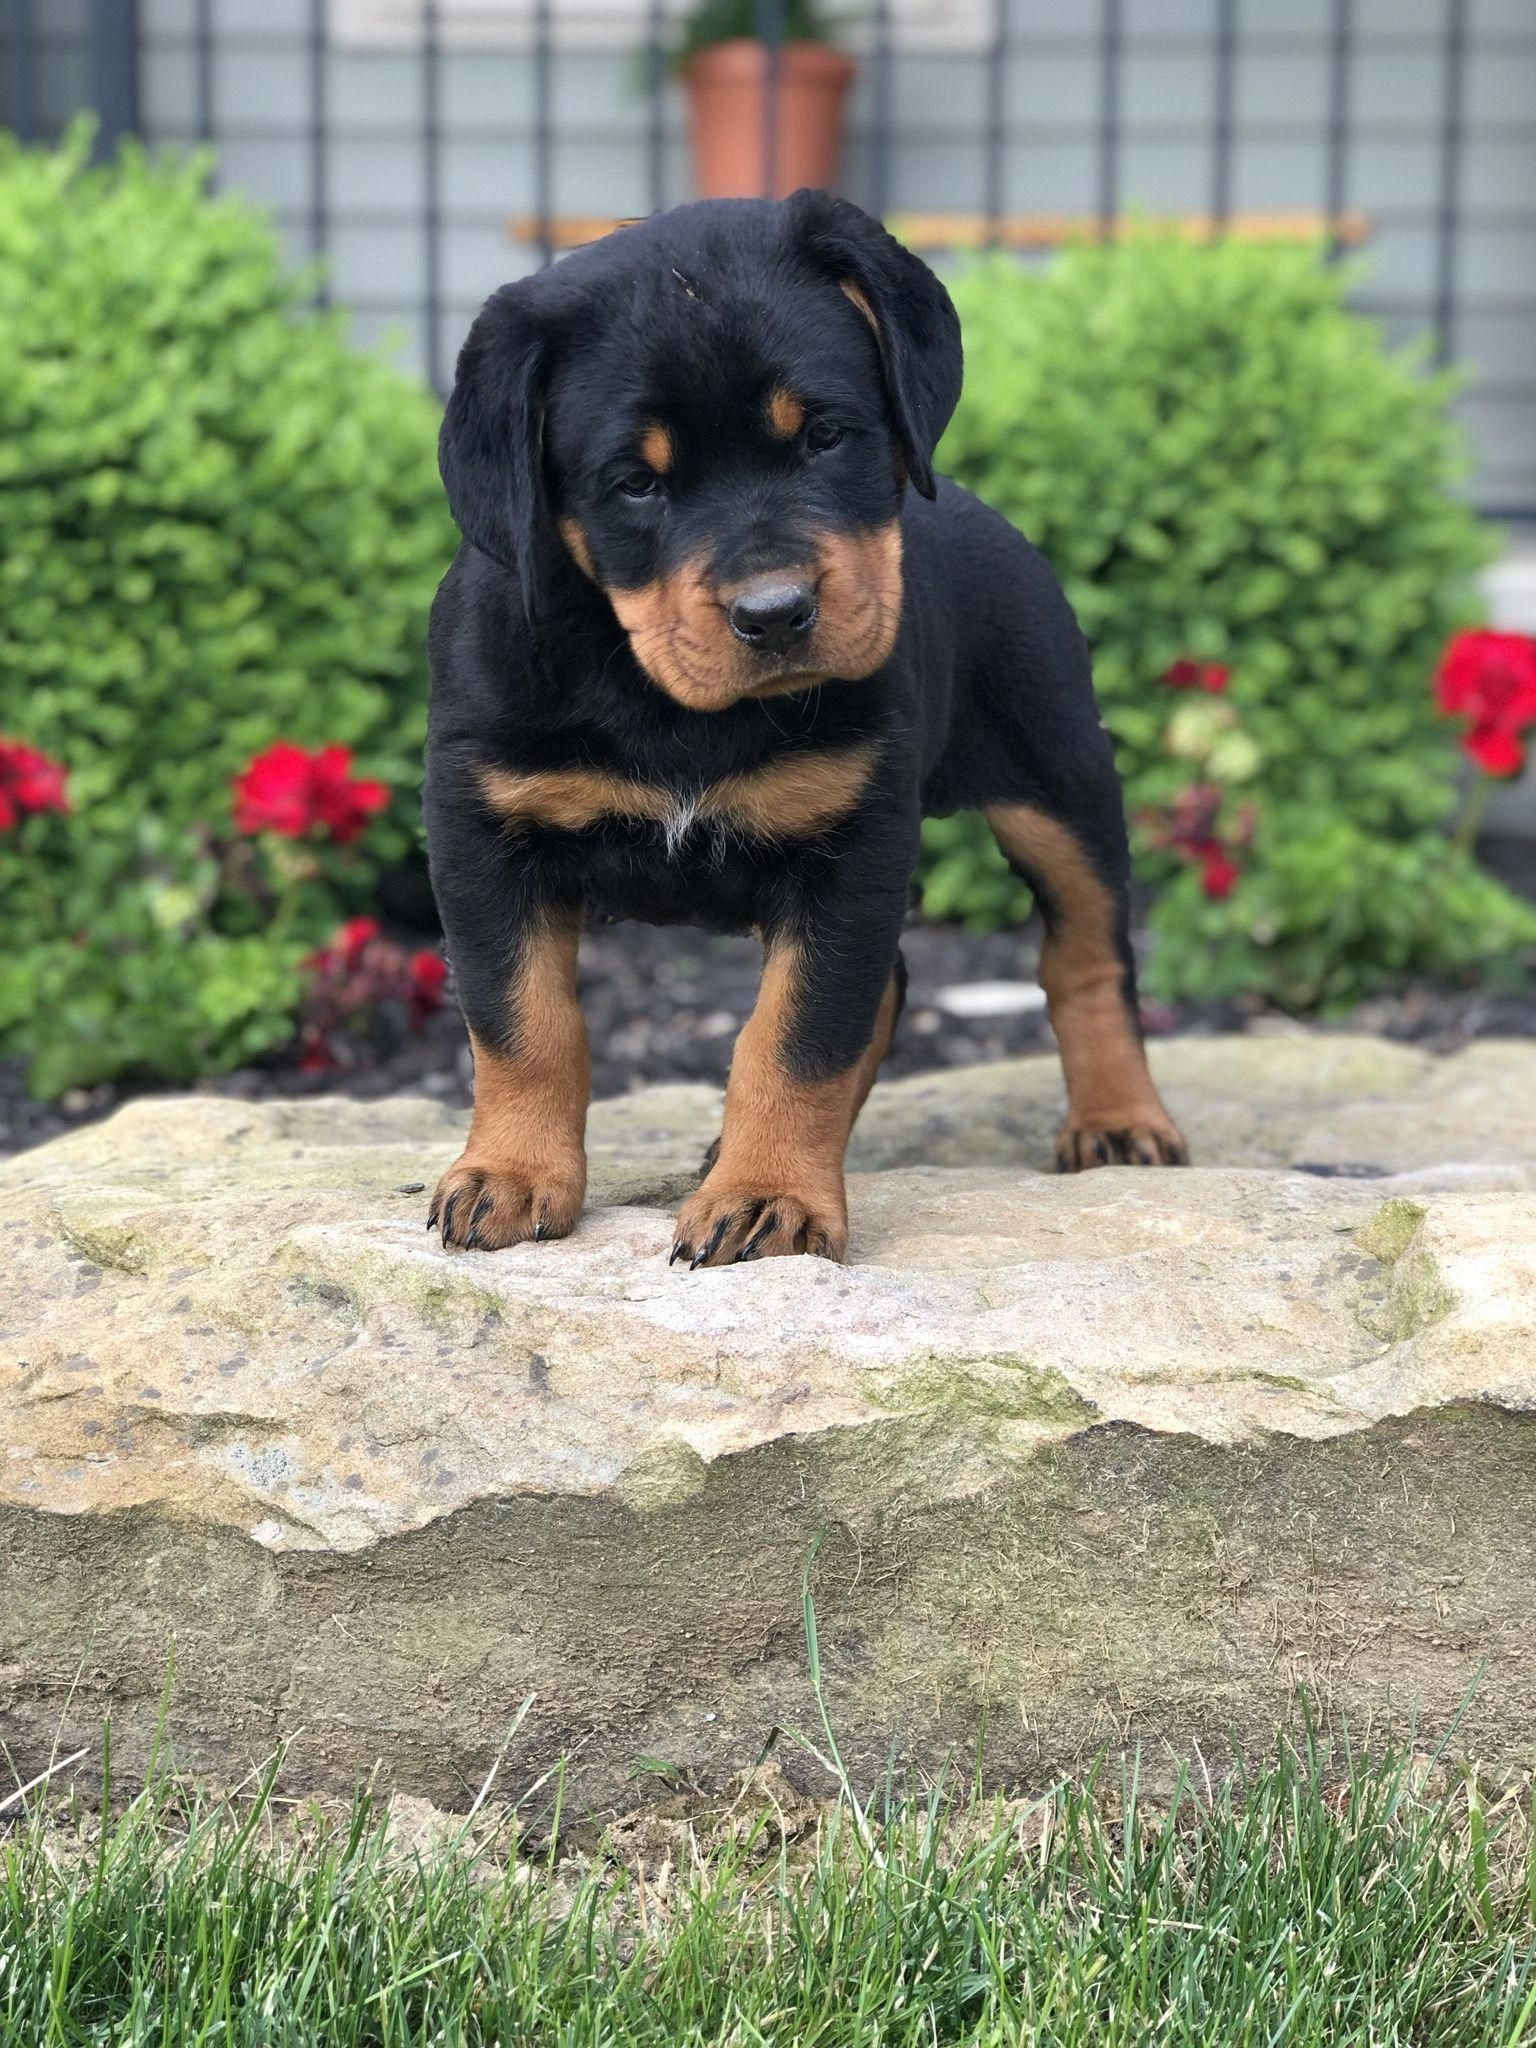 The Beagle Is A Breed Of Small Hound Originally Reproduced As Scent Hounds To Help Hunters They Are Widely Known And En In 2020 Dog Breeds Rottweiler Puppies Puppies